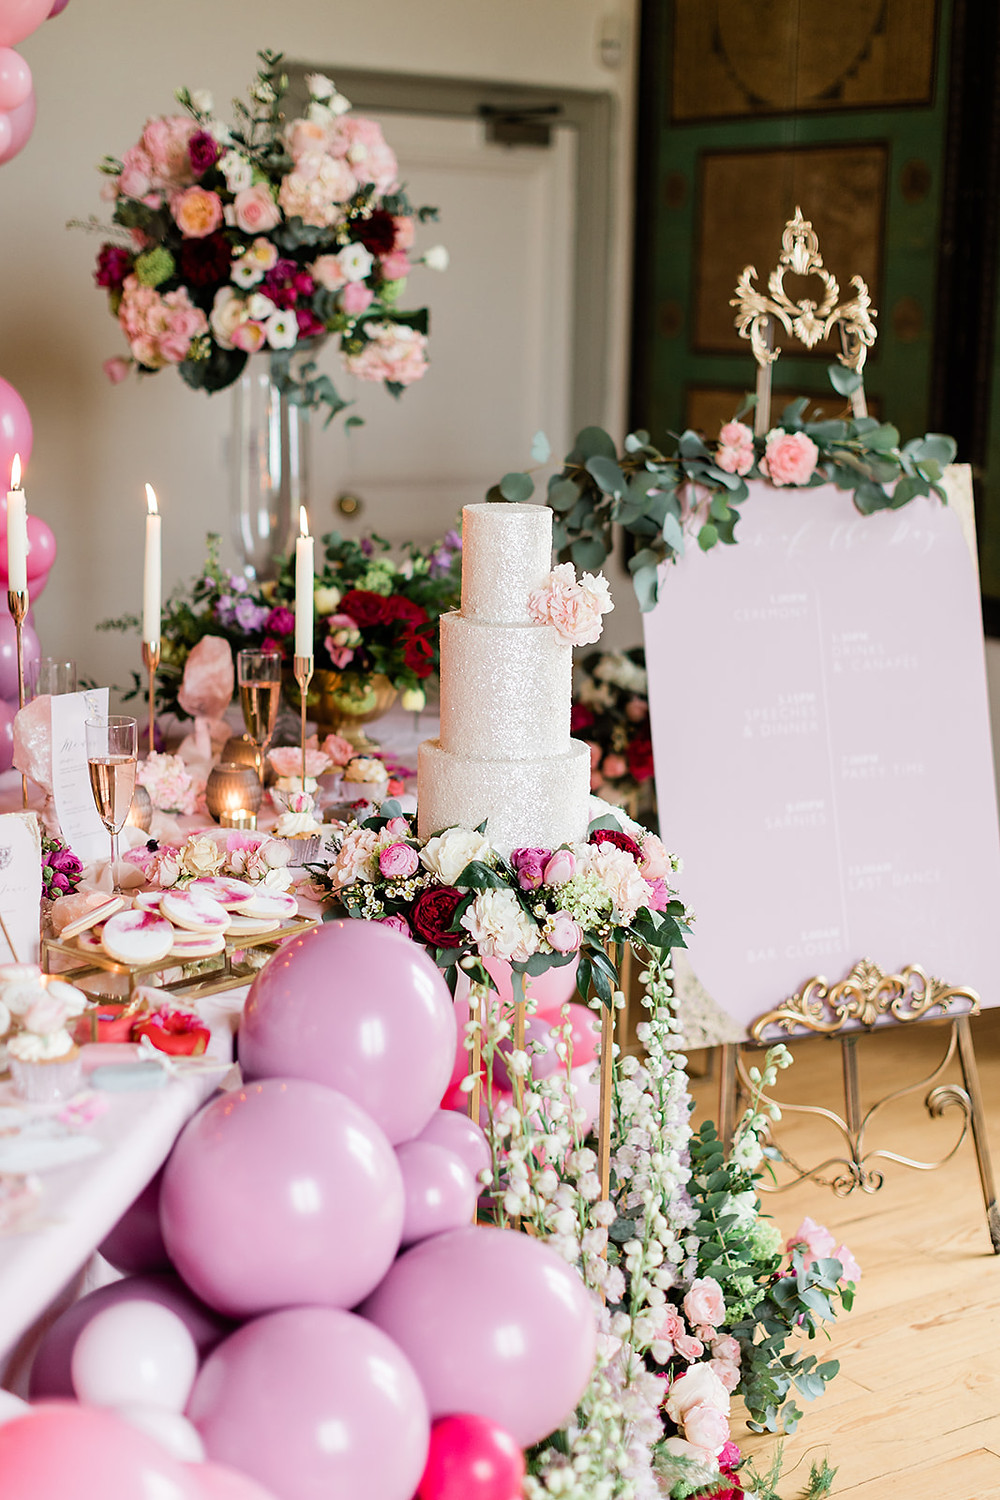 Table Beautifully decorated for a wedding meal with flowers, centrepieces, props in gold and pink. Capheaton Hall Northumberland wedding ckae flowers florist balloons